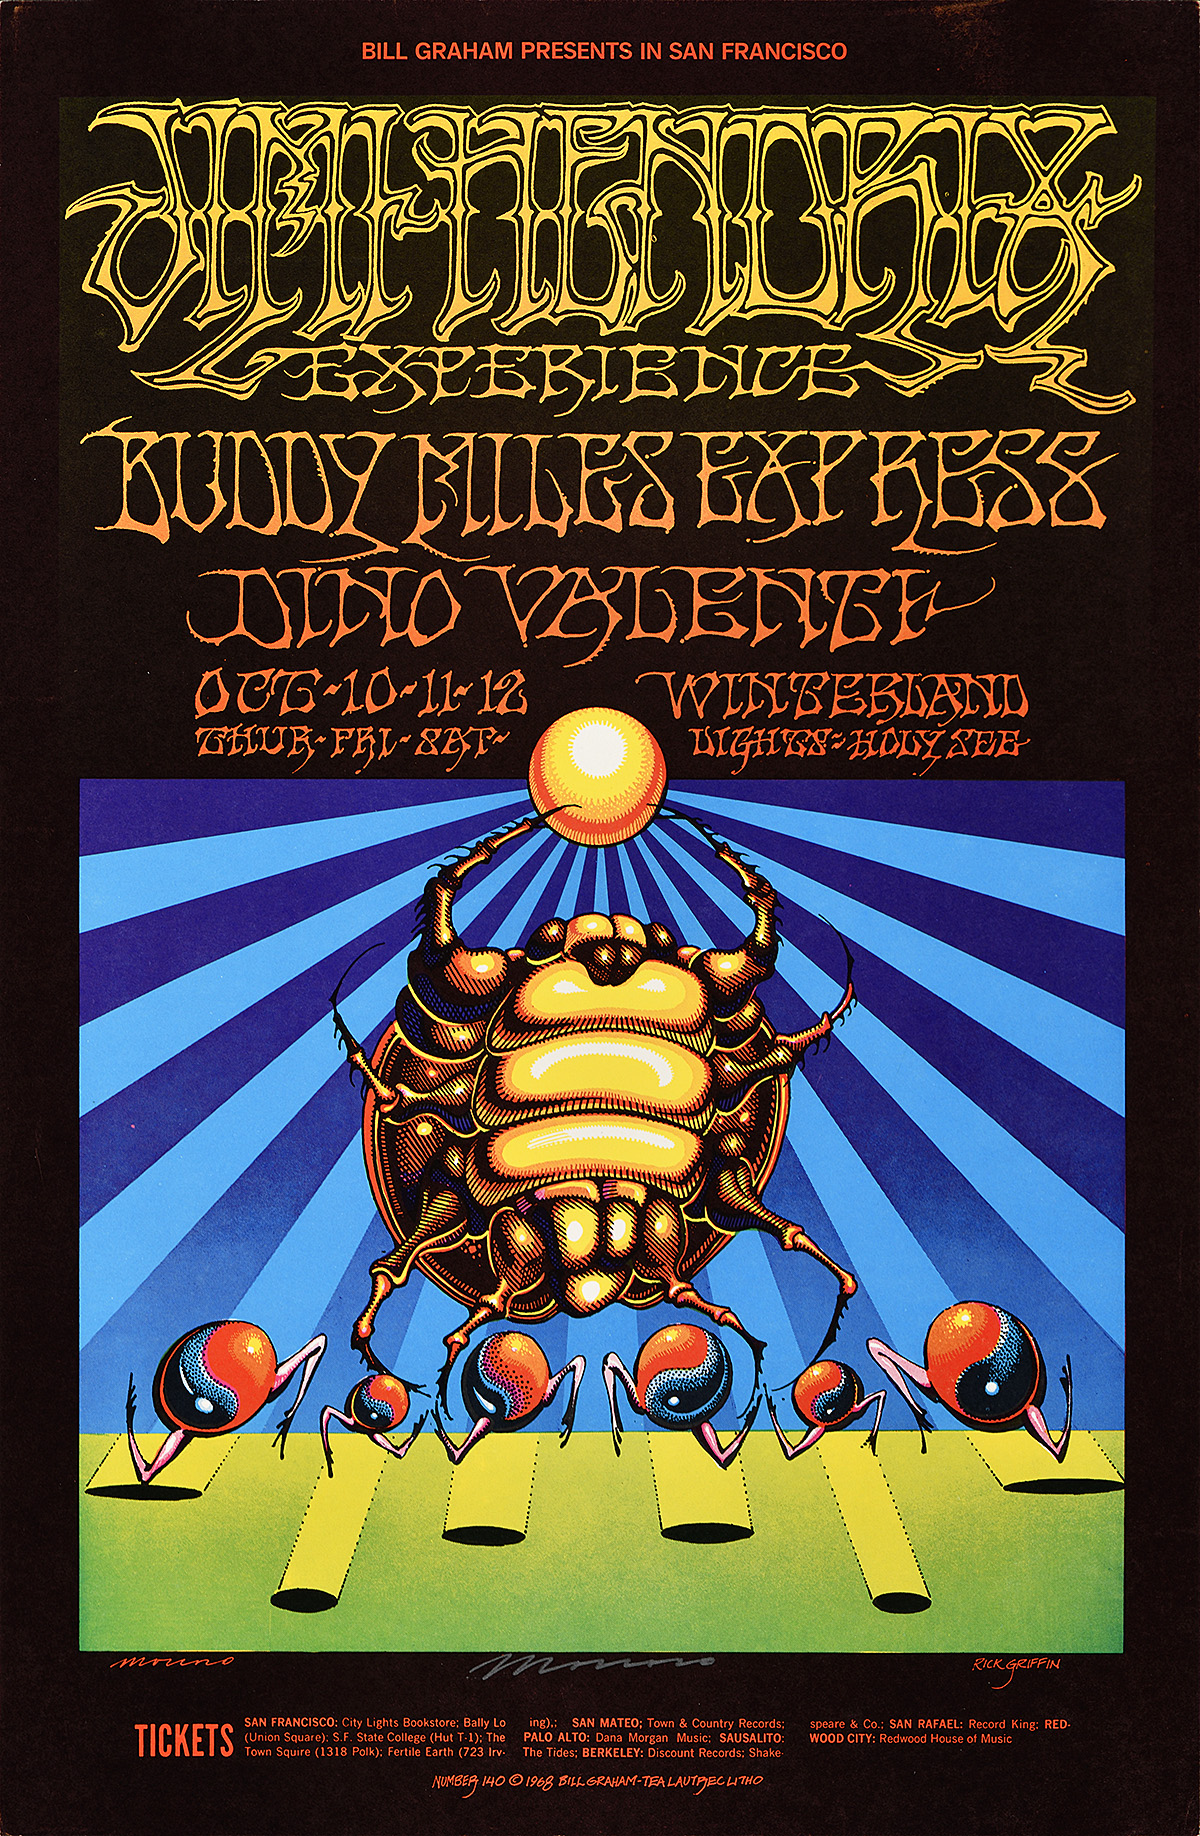 illustrational poster of an insect holding a ball up to the sky with two legs